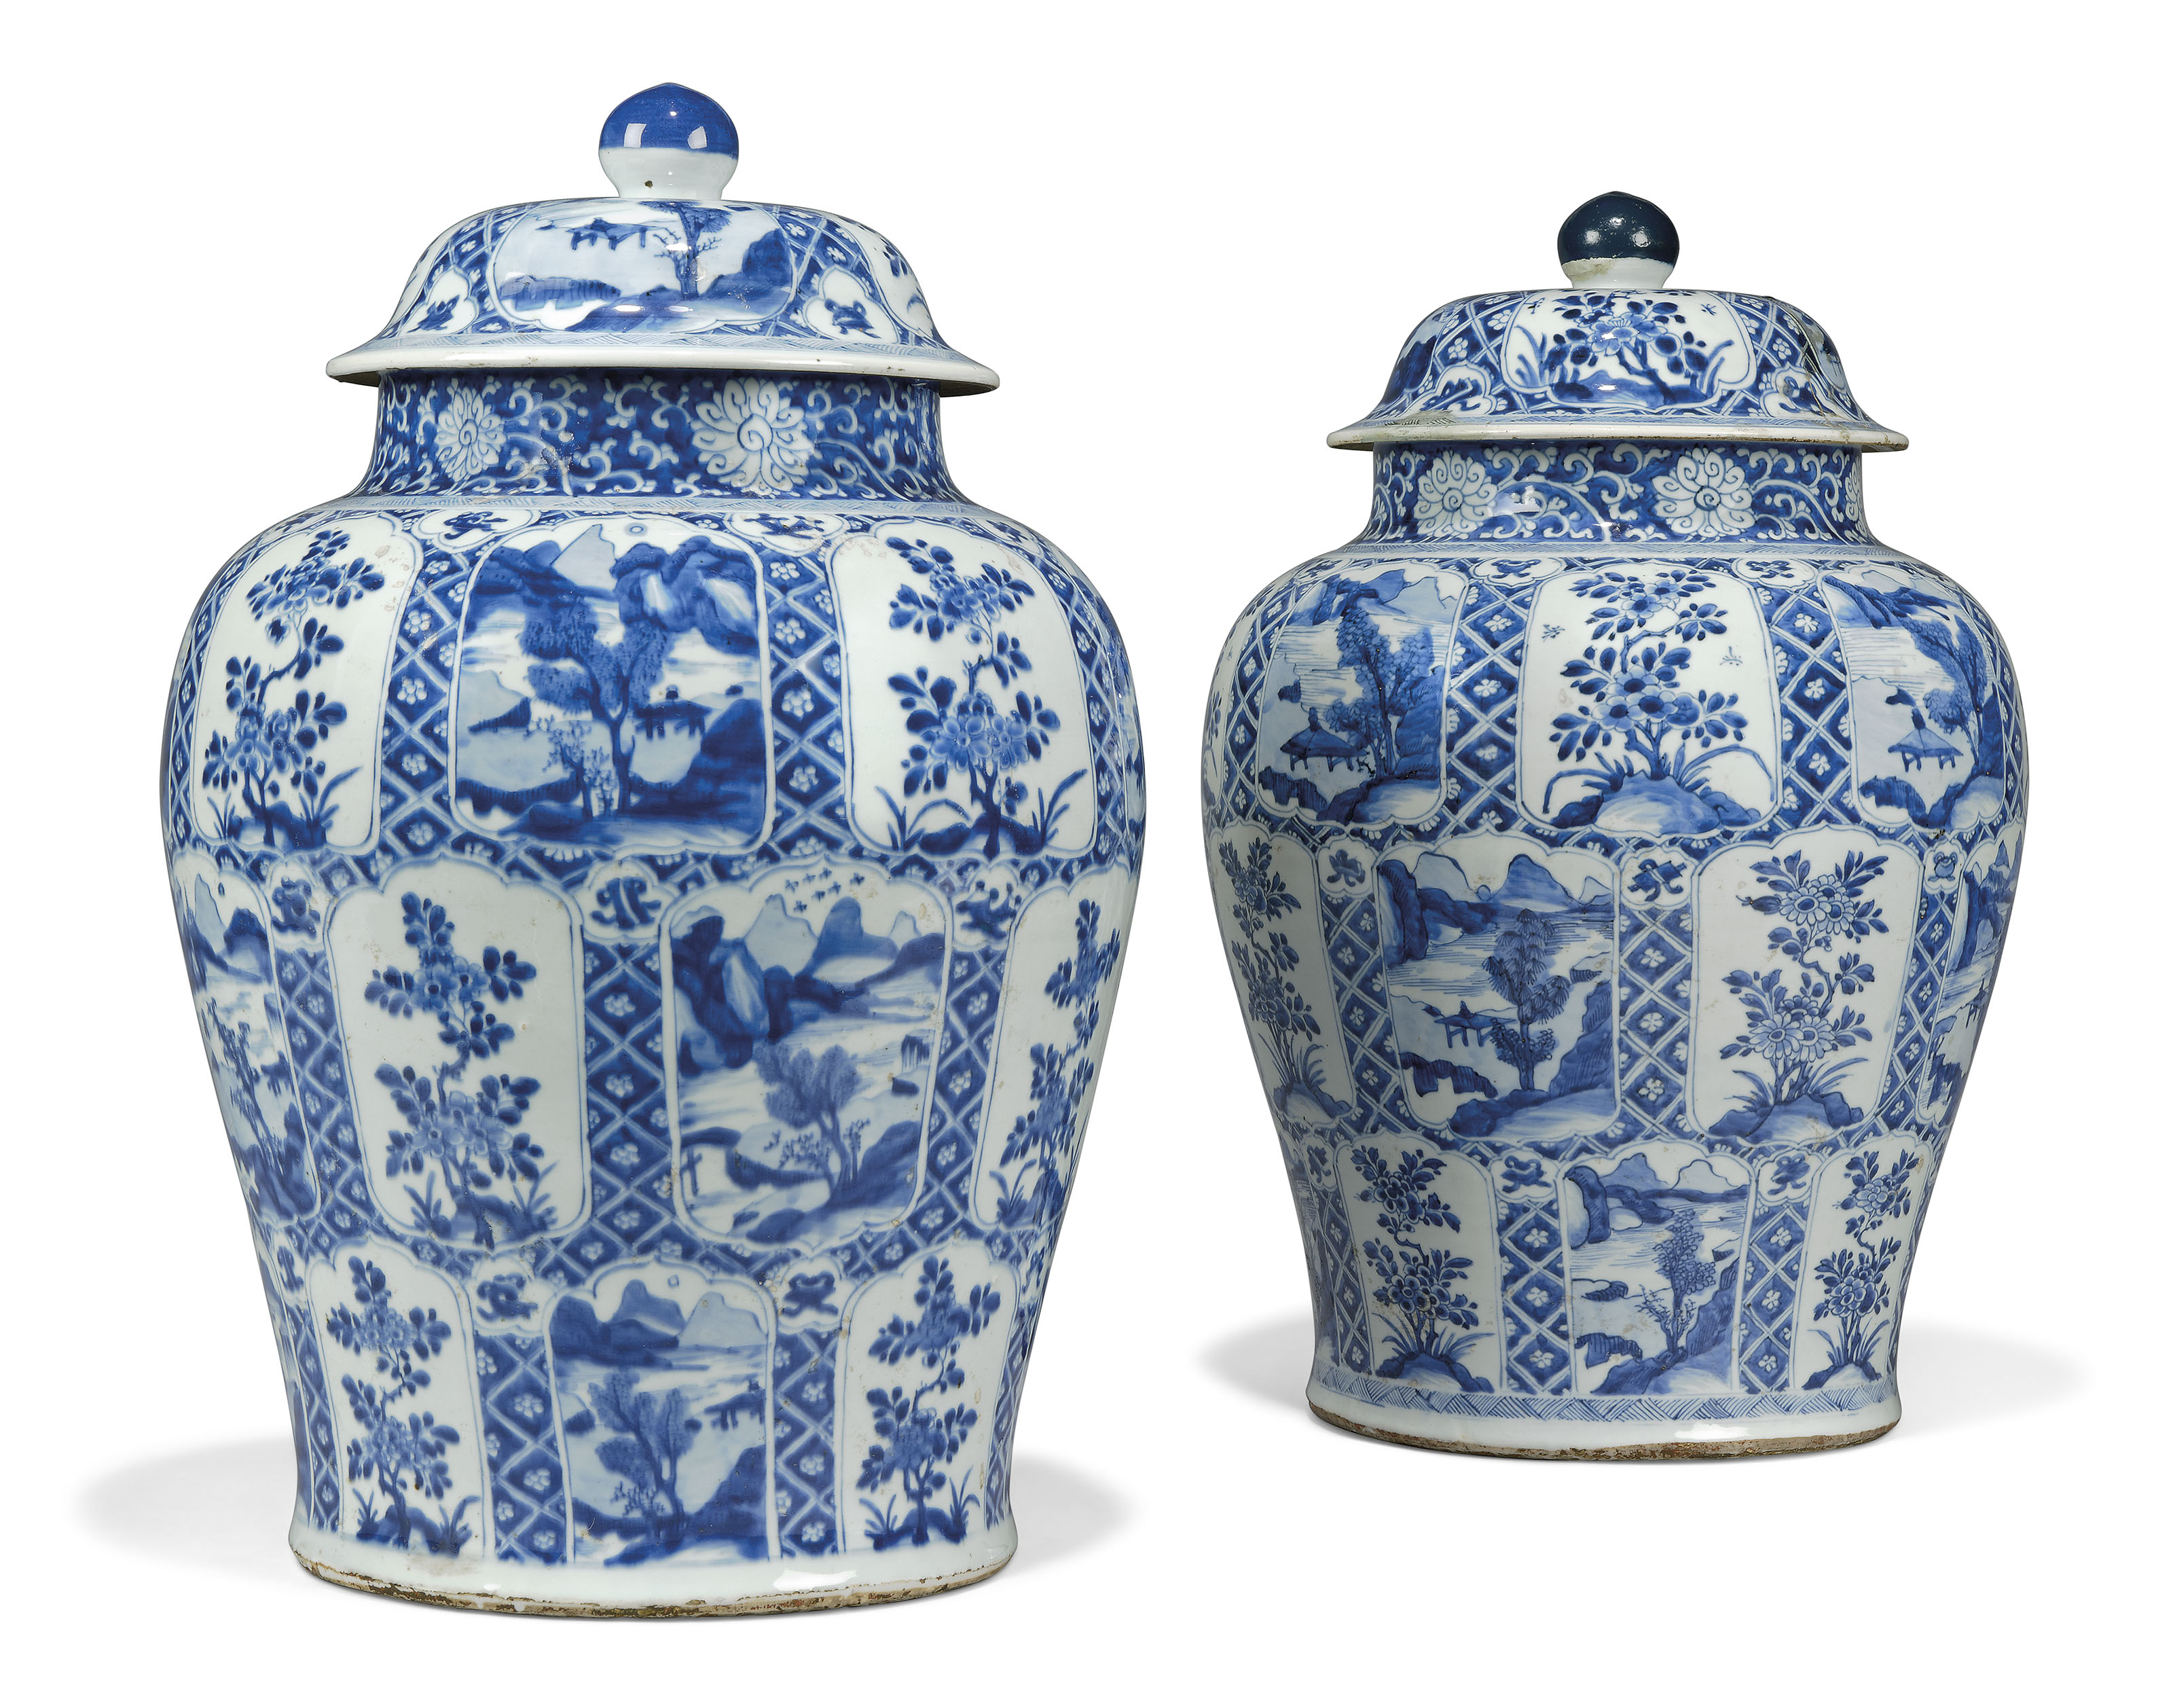 A LARGE PAIR OF CHINESE BLUE AND WHITE BALUSTER VASES AND COVERS